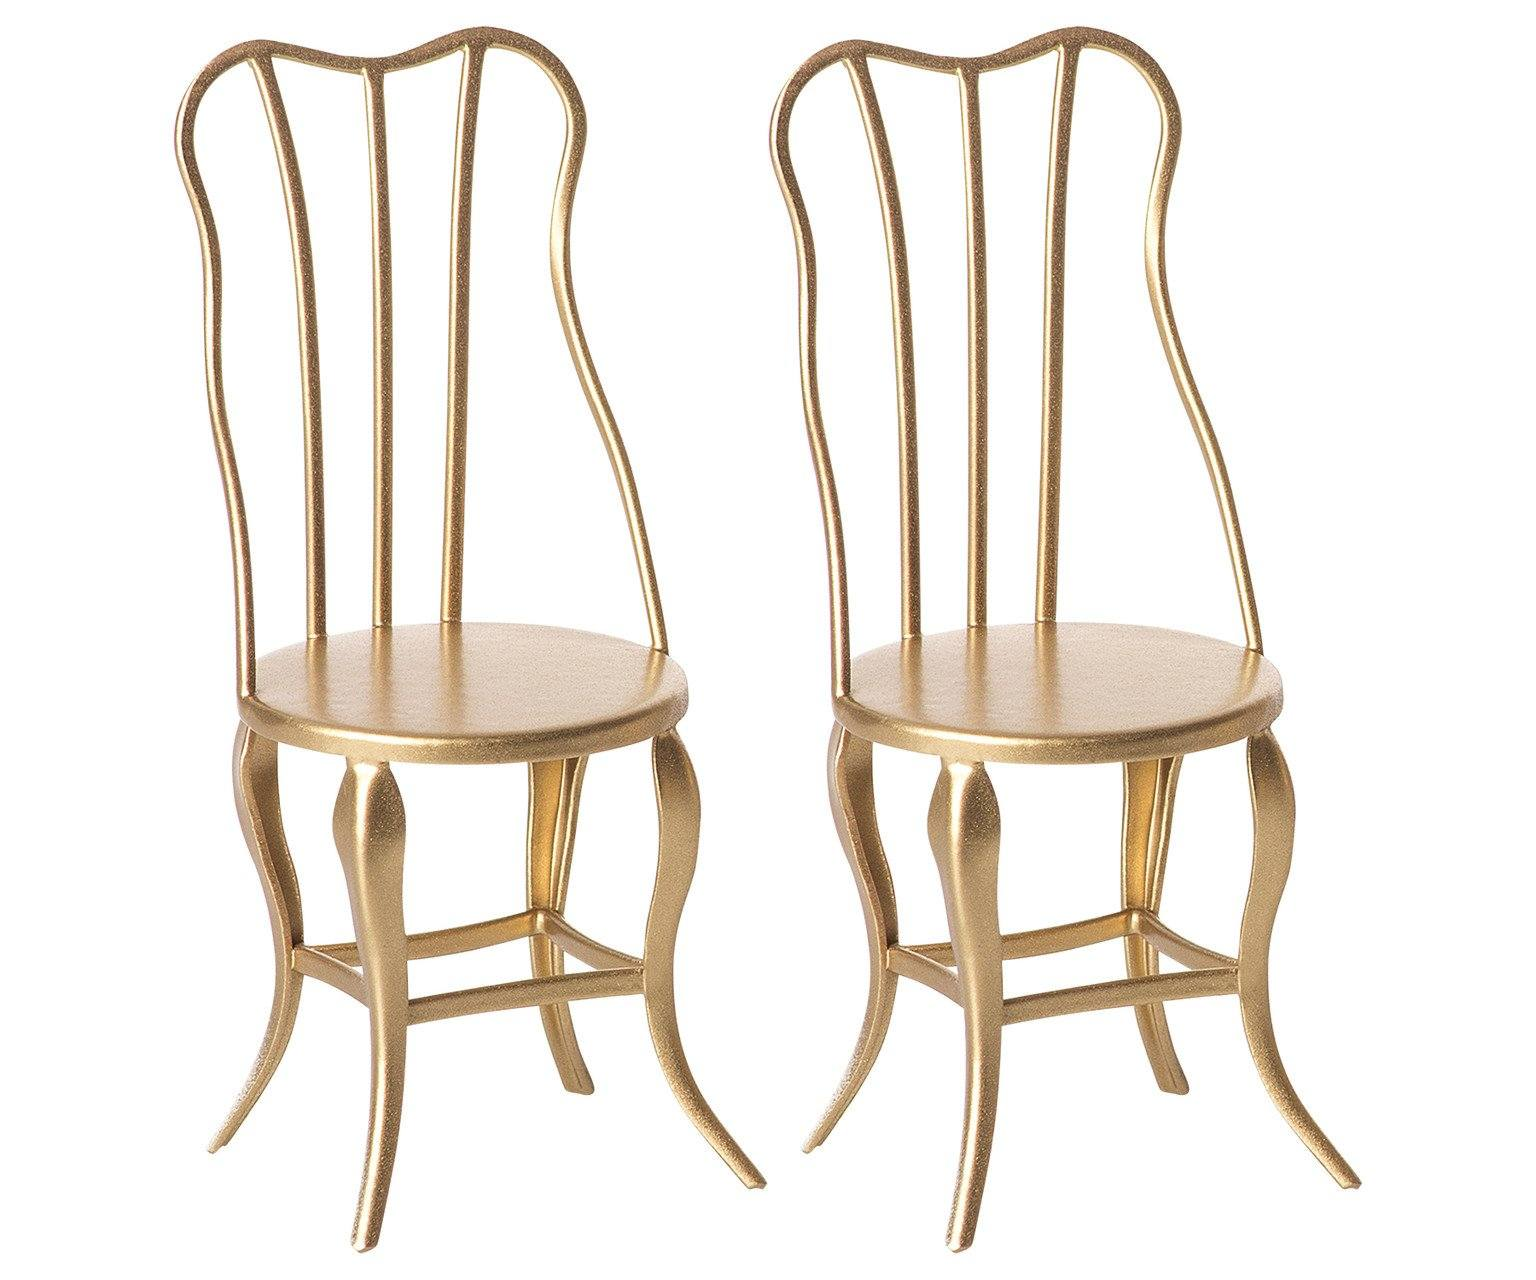 Maileg Gold Vintage Chairs Micro - Set of 2 - BouChic